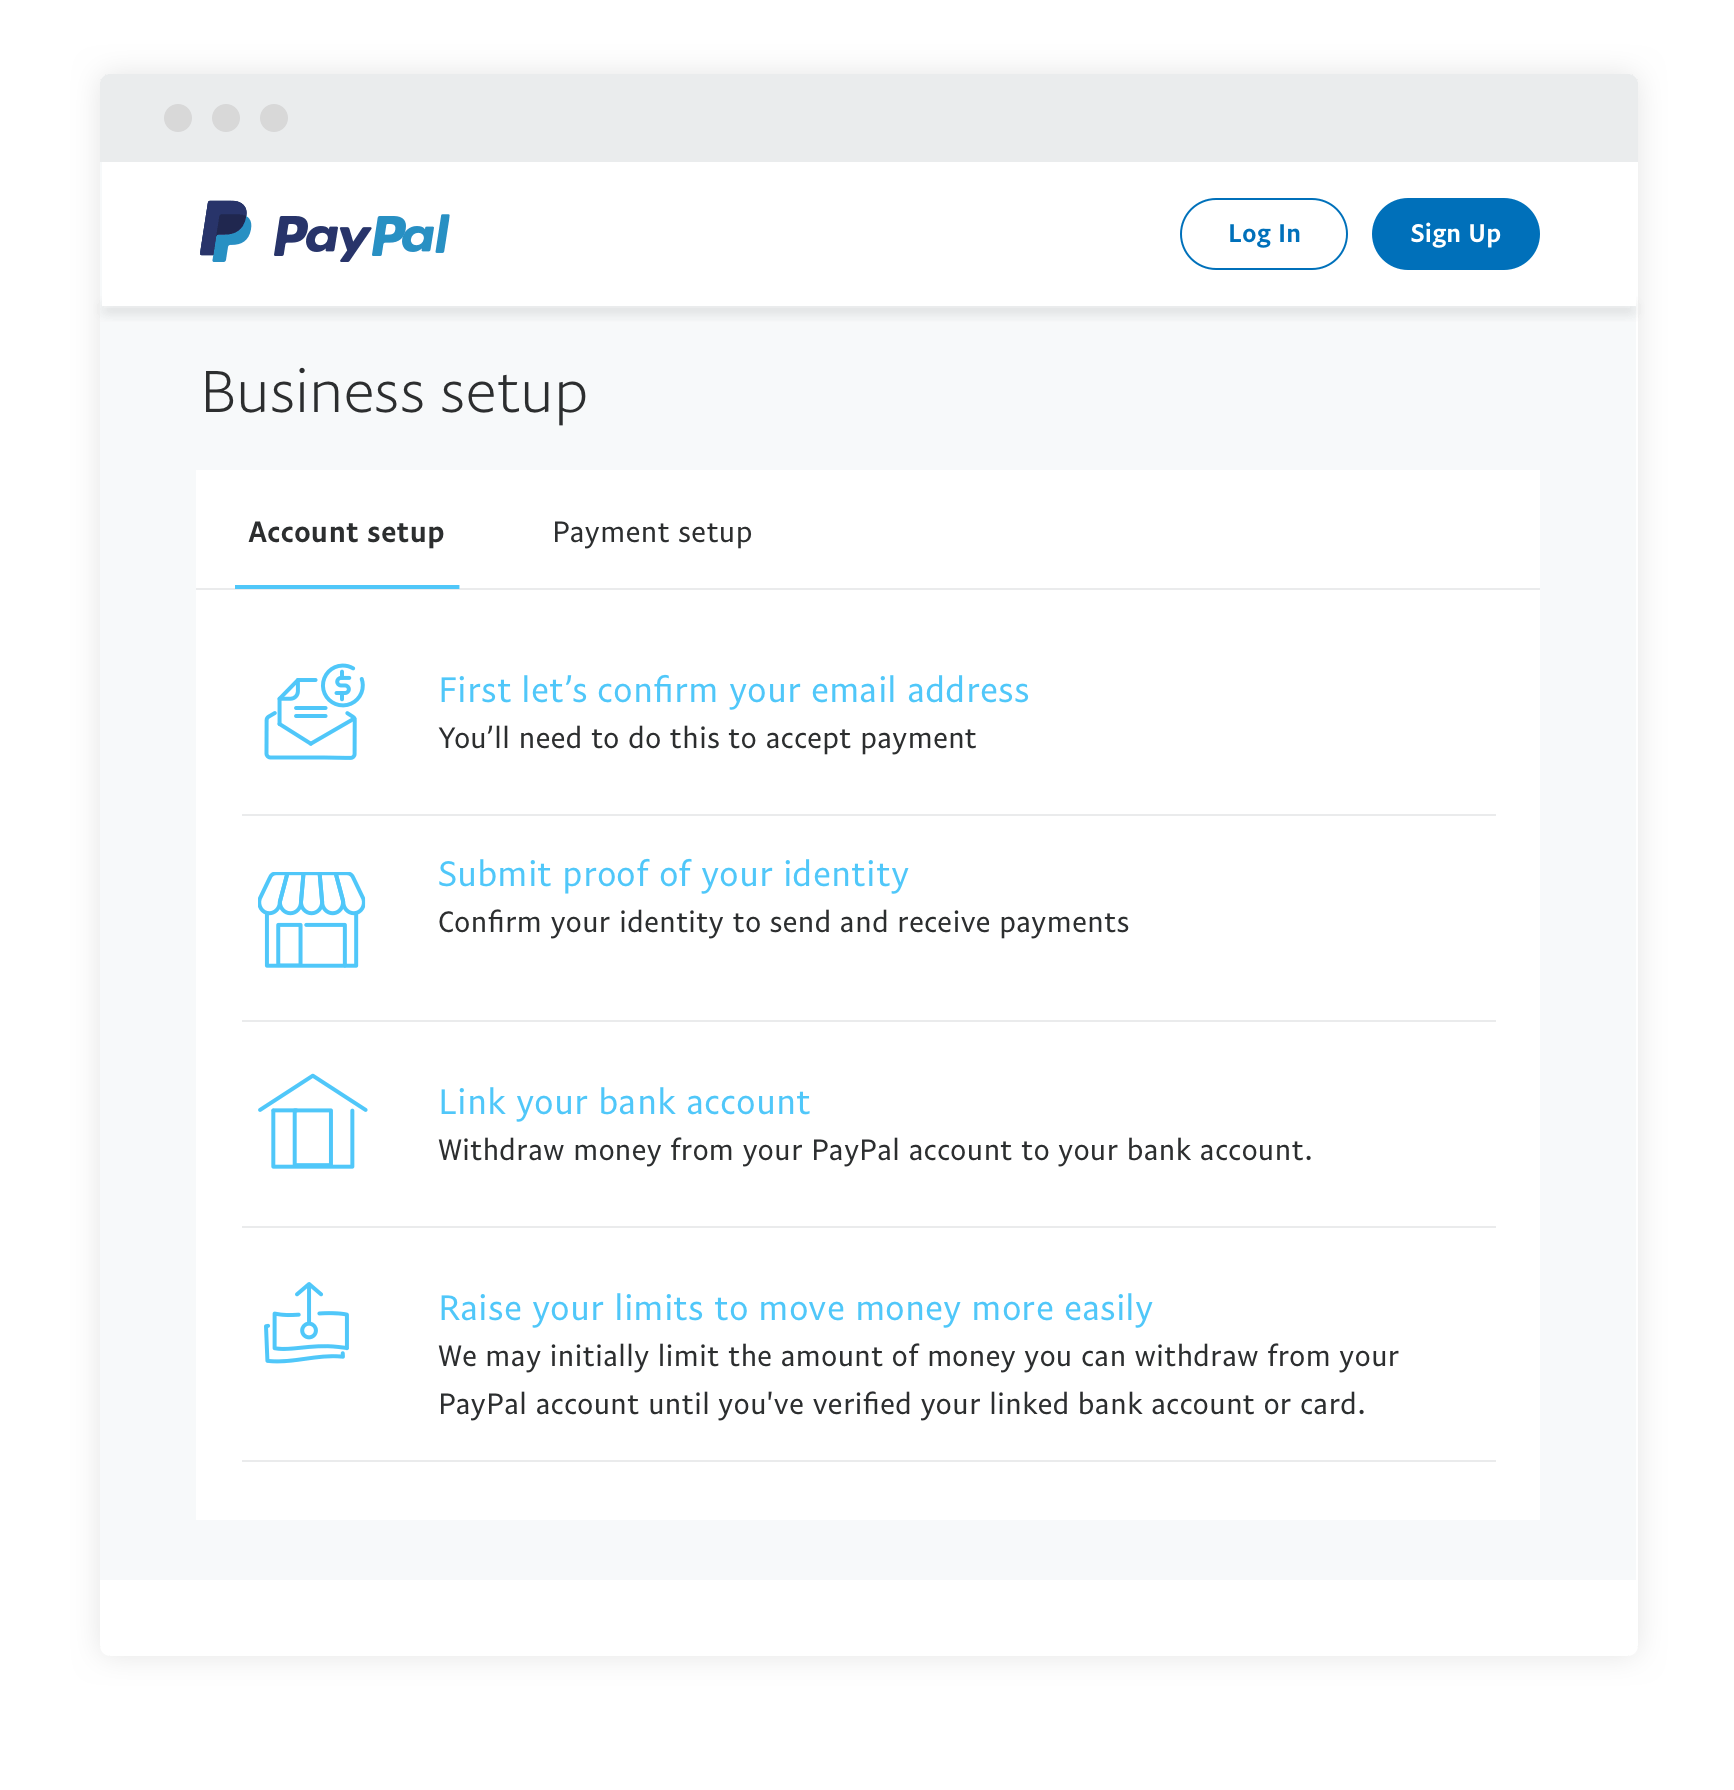 What do you need to sign up for a paypal account